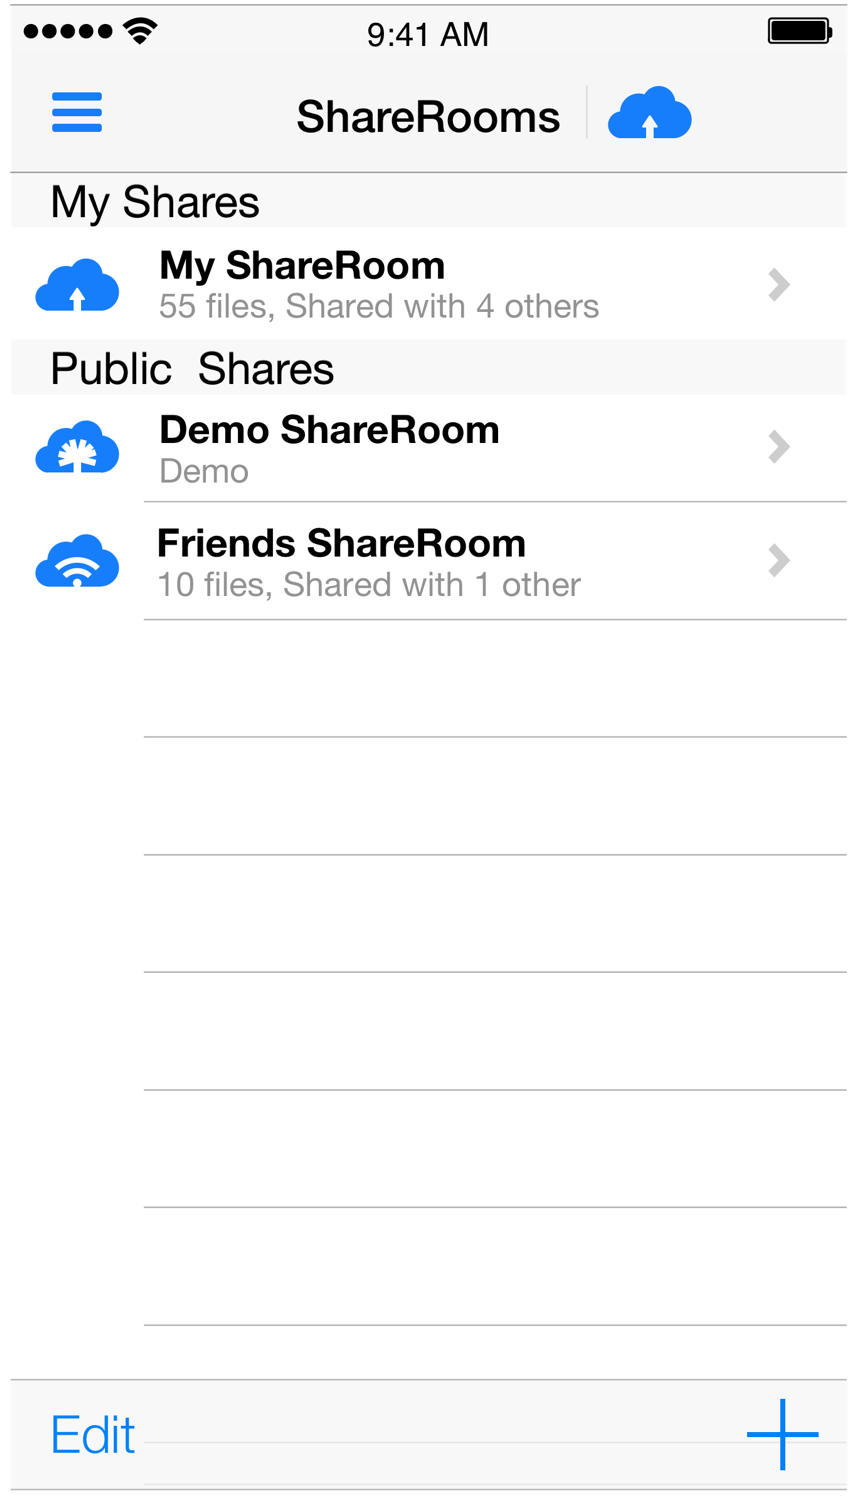 ShareRooms